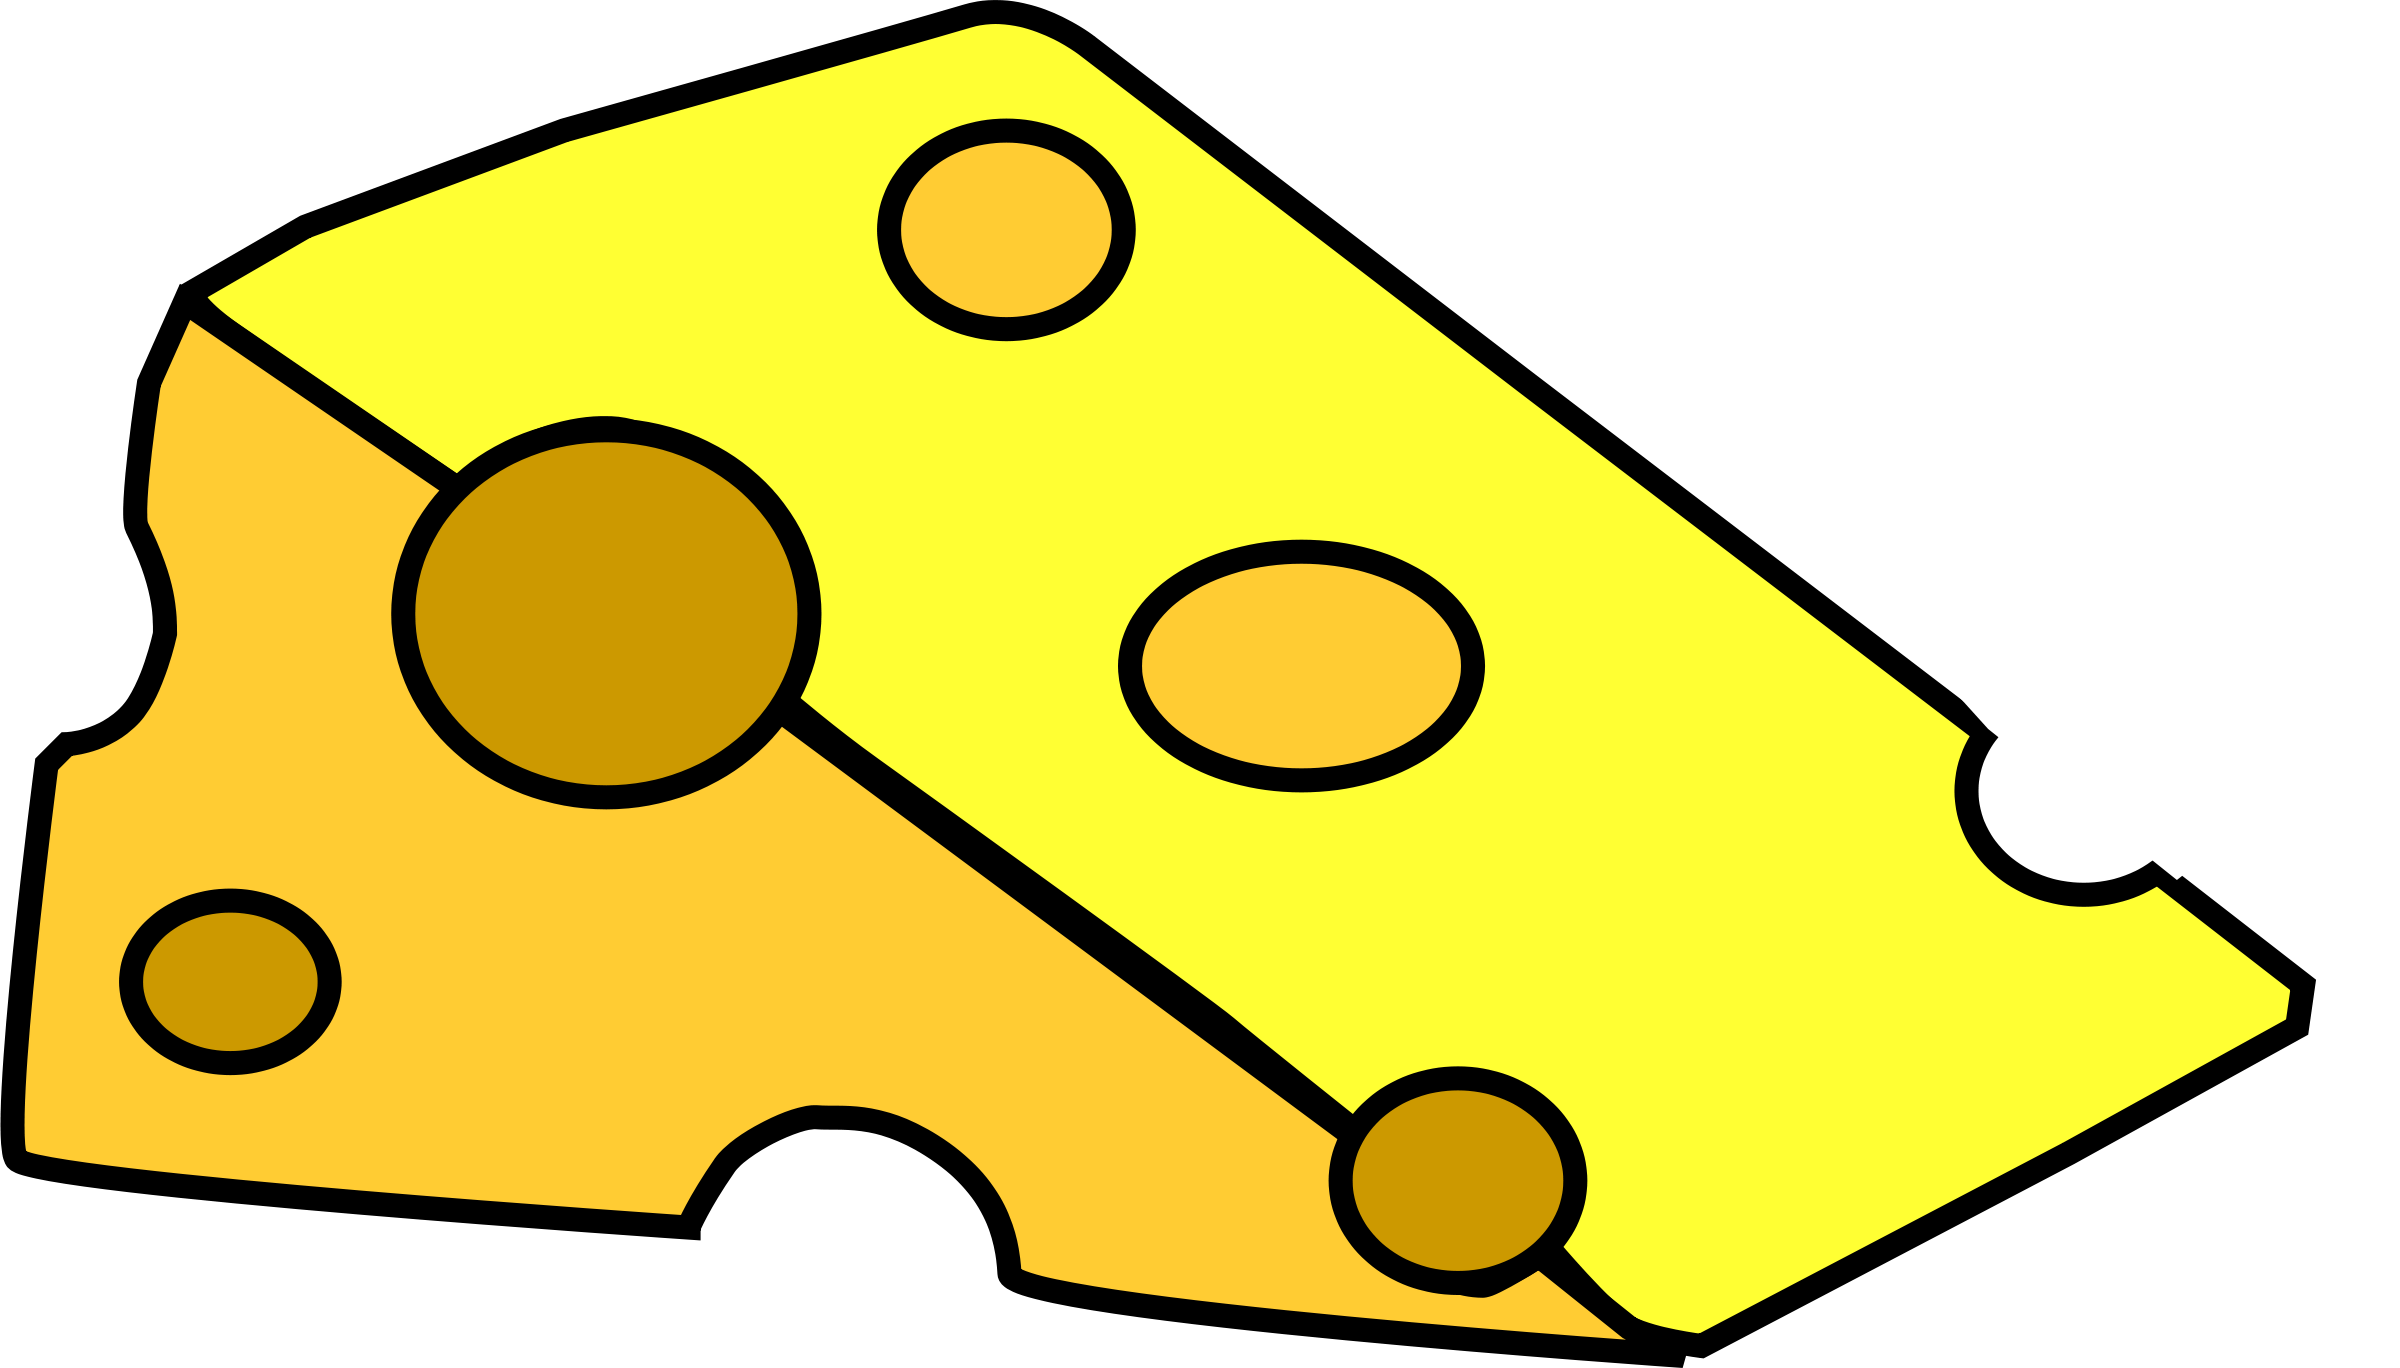 Free Pictures Of Swiss Cheese, Download Free Clip Art, Free.